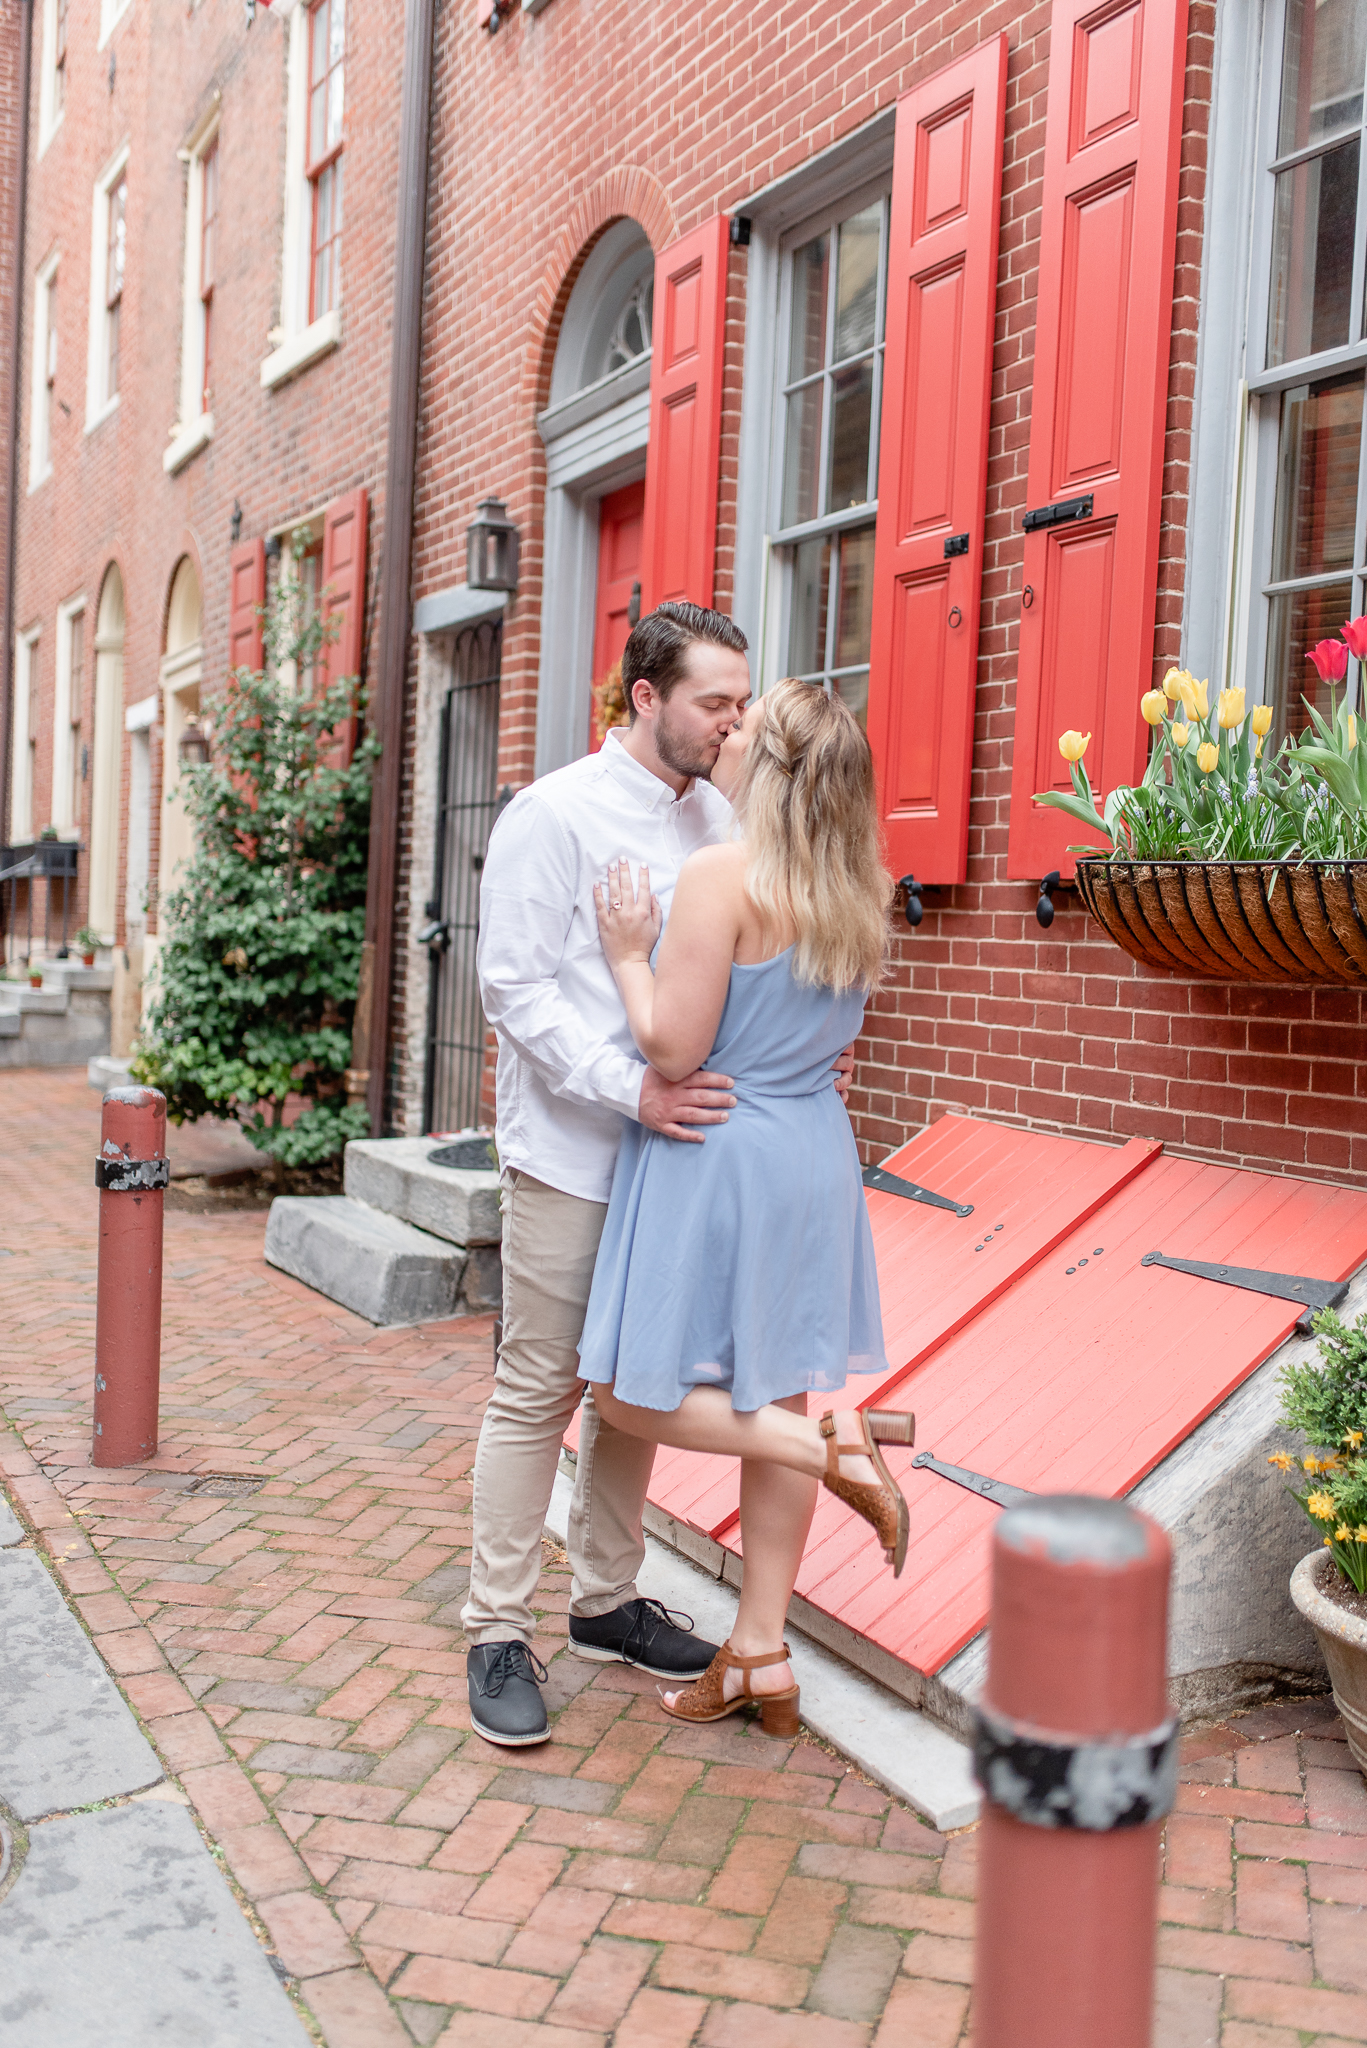 04_14_2019_Dana_Slifer_Photography_Alyssa_and_Brett_Engagement_Session_24.jpg